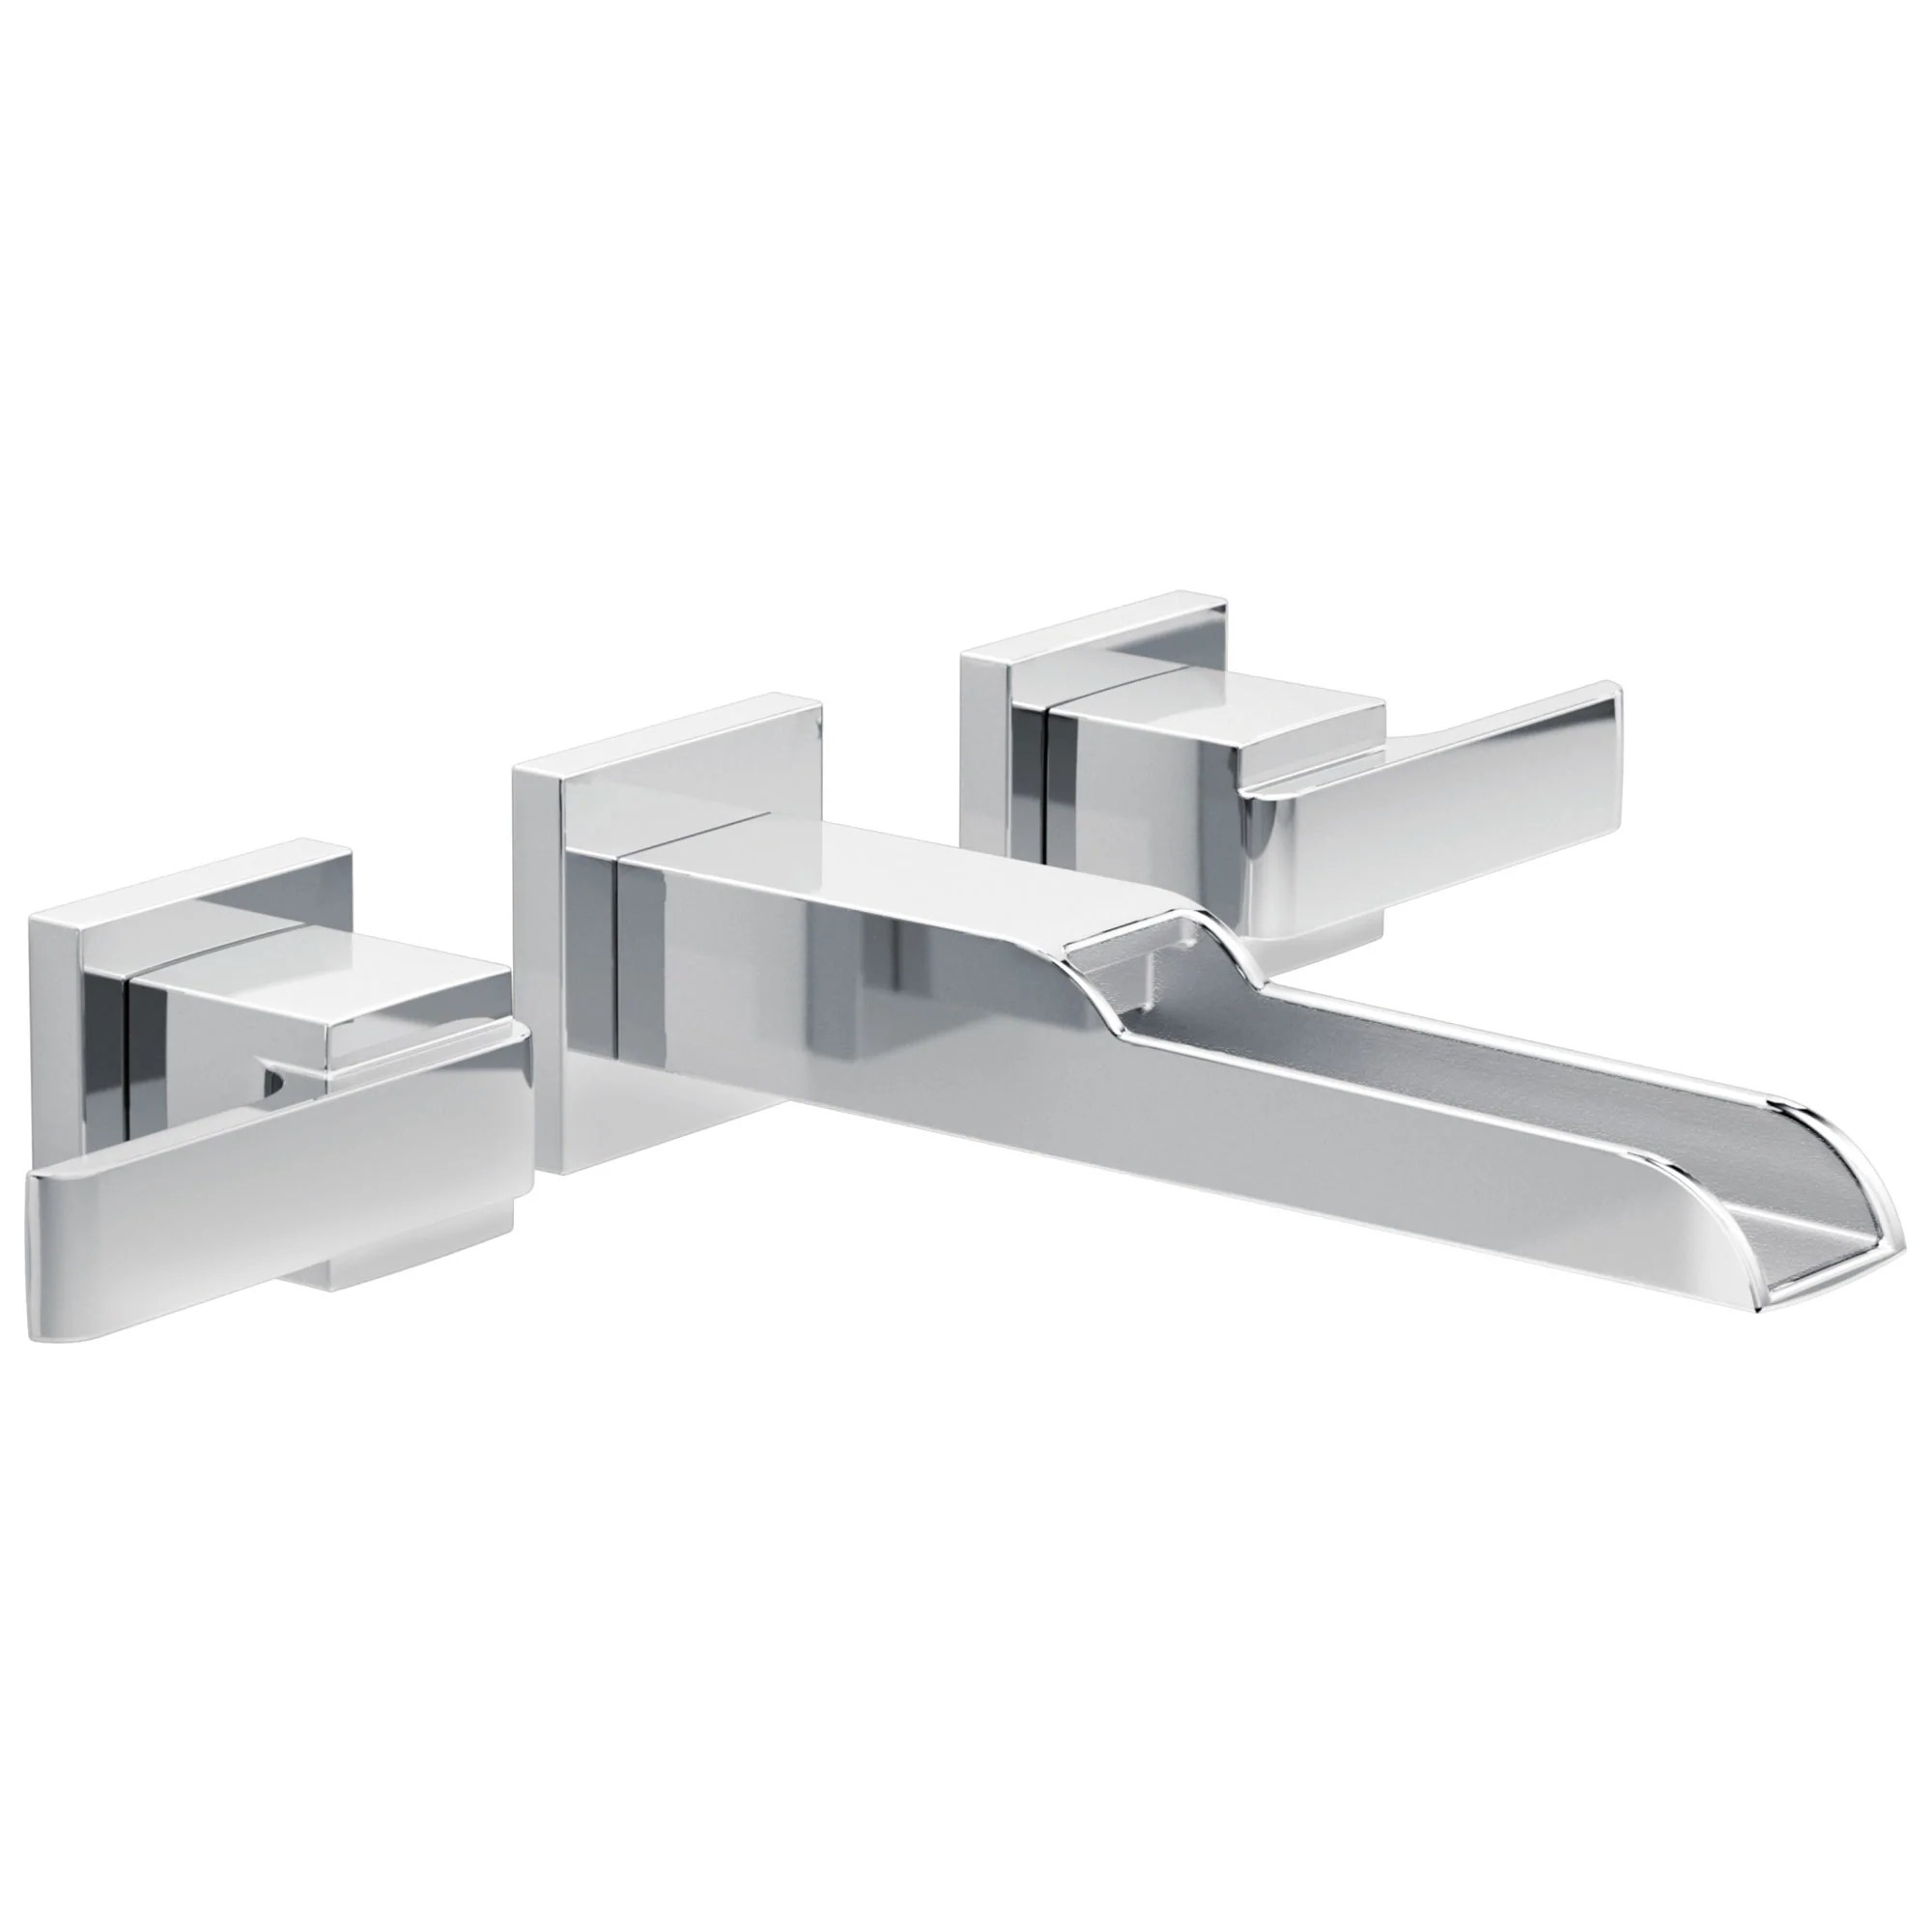 delta ara collection chrome two handle modern wall mount bathroom lavatory sink faucet with channel spout includes rough in valve d2089v